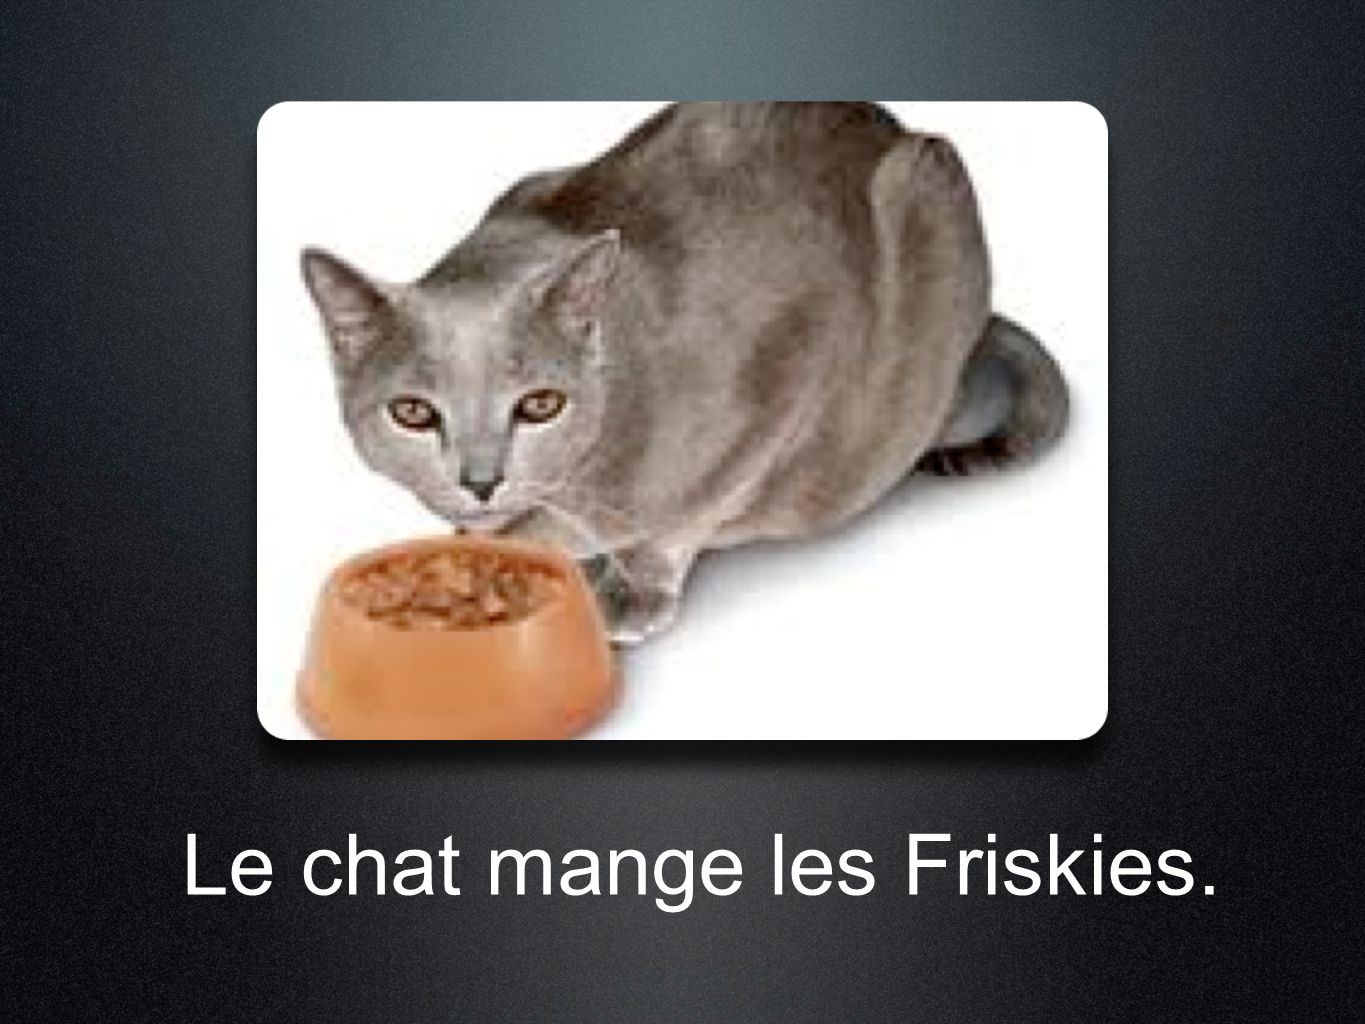 Le chat mange les Friskies.